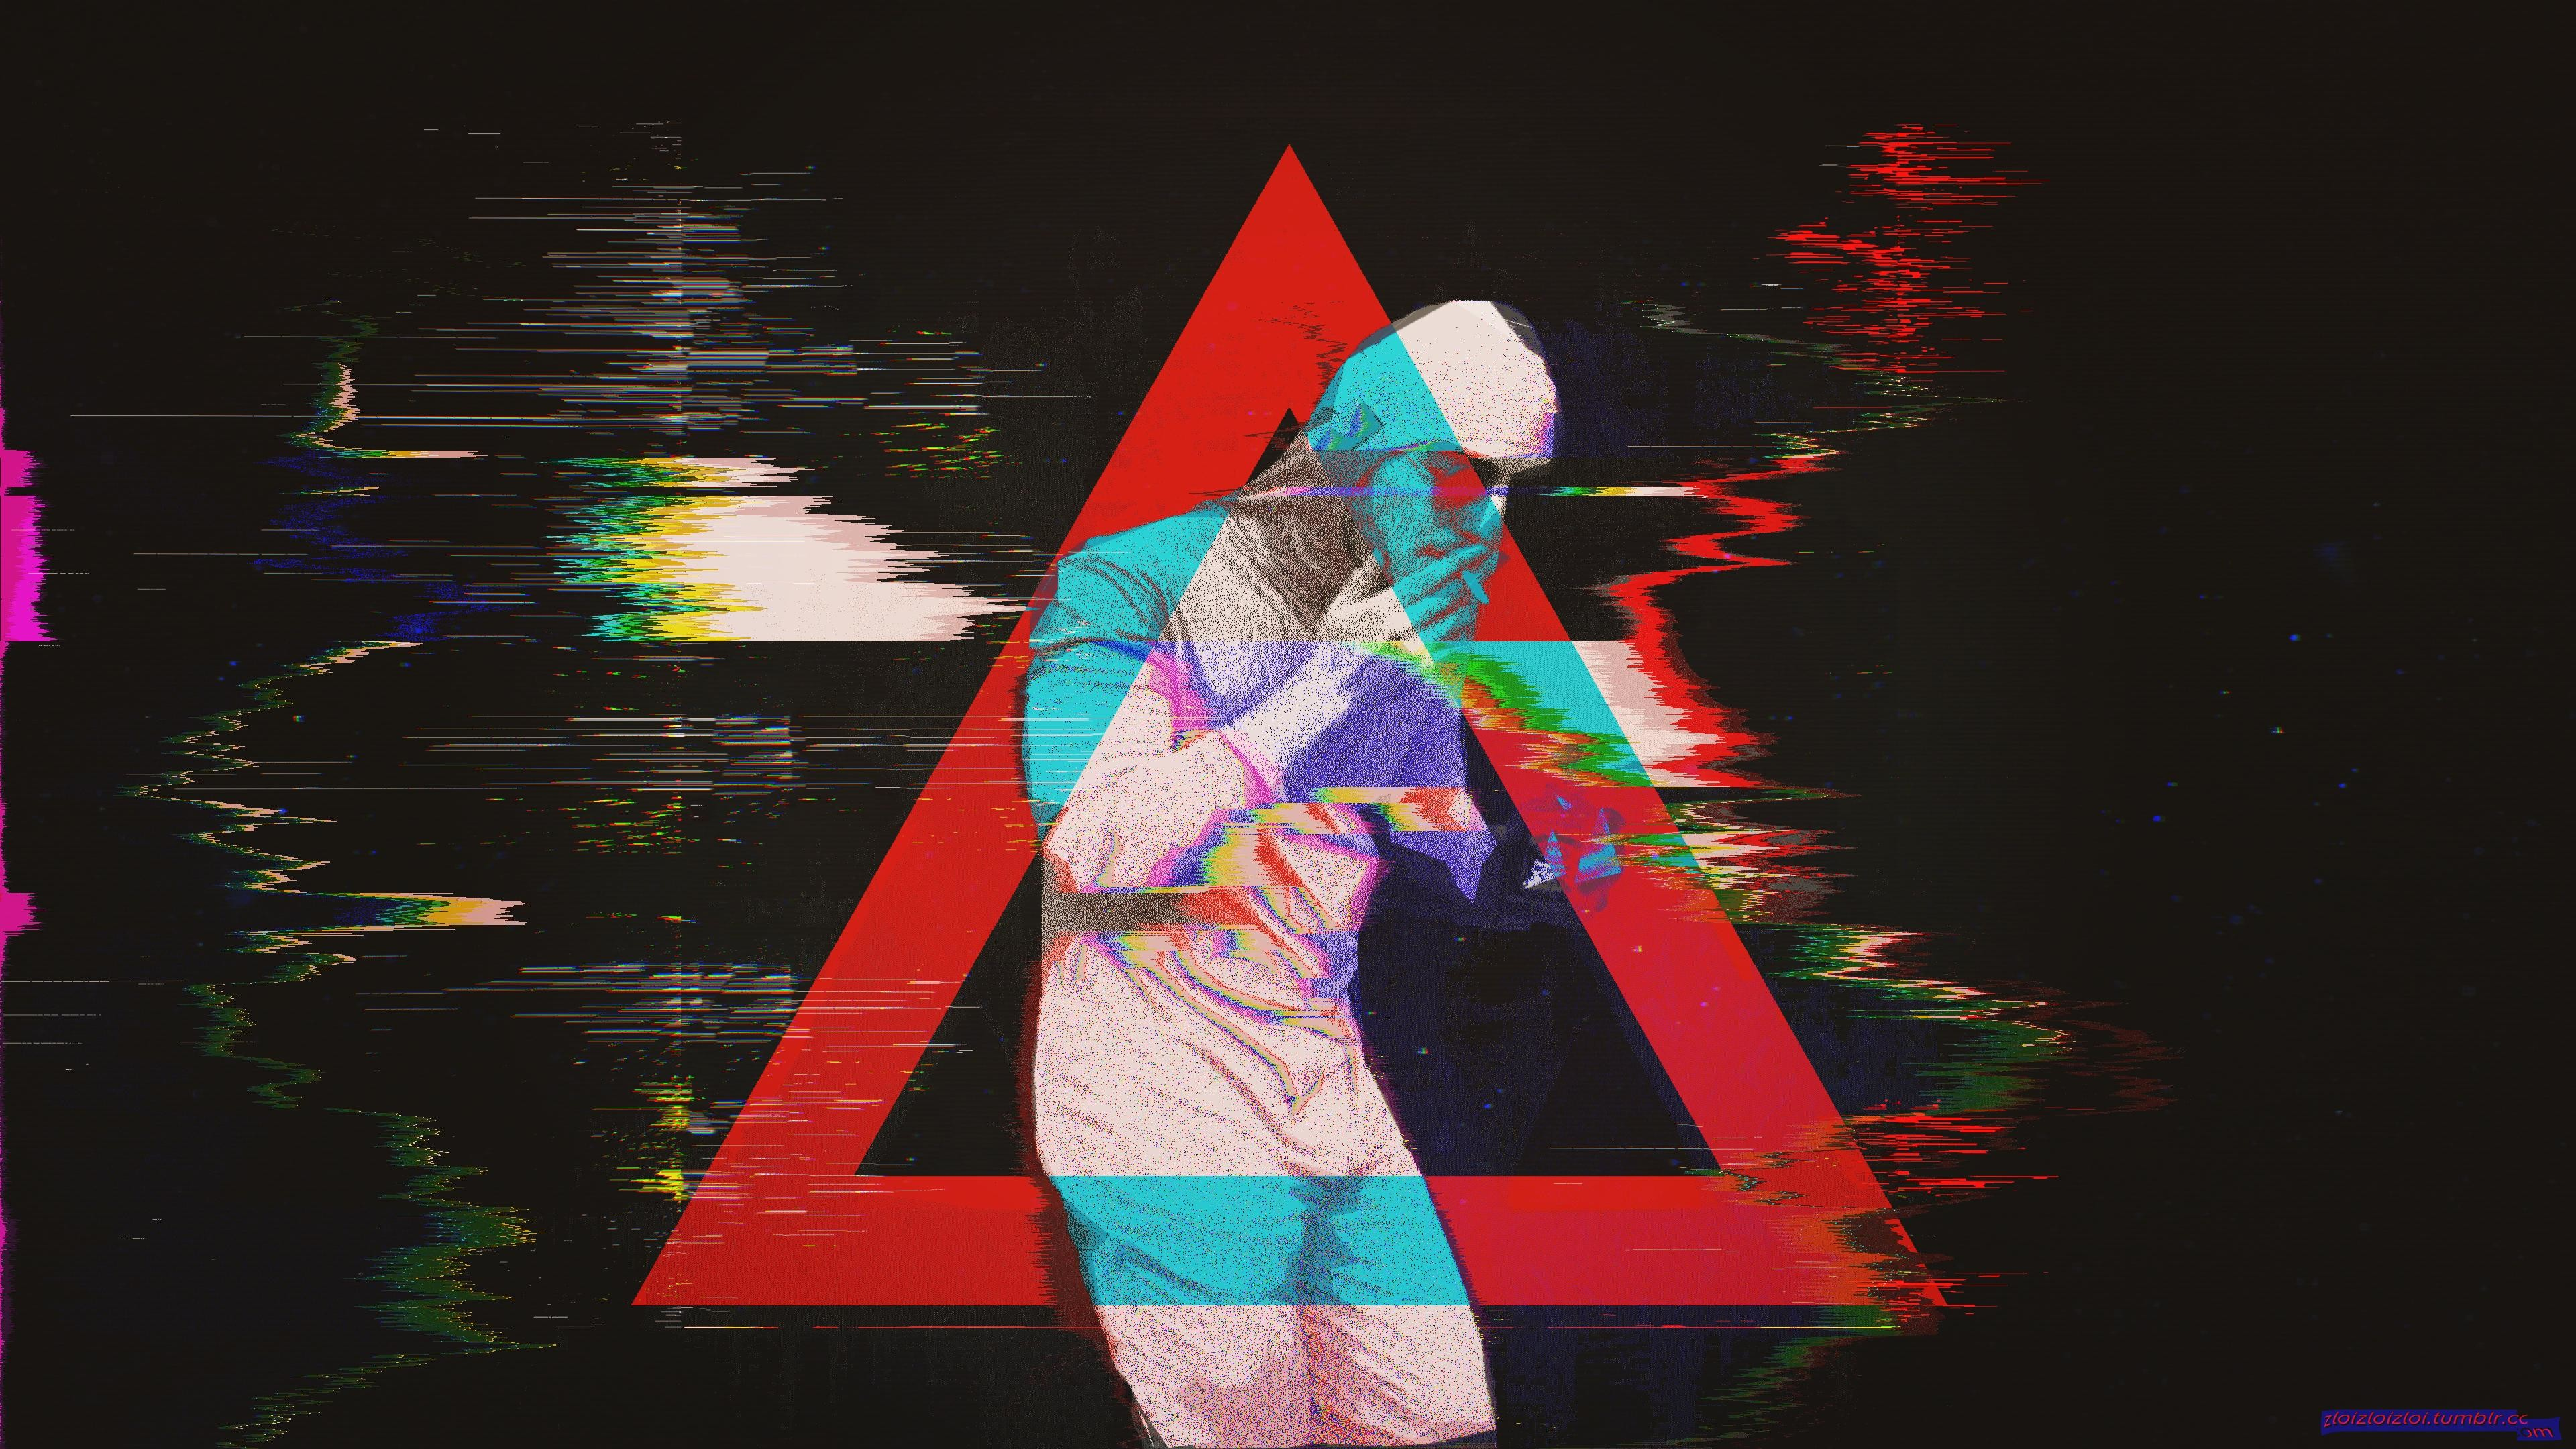 [3840×2160] Glitch Filthy Frank Abstract Smoke /r/wallpapers …